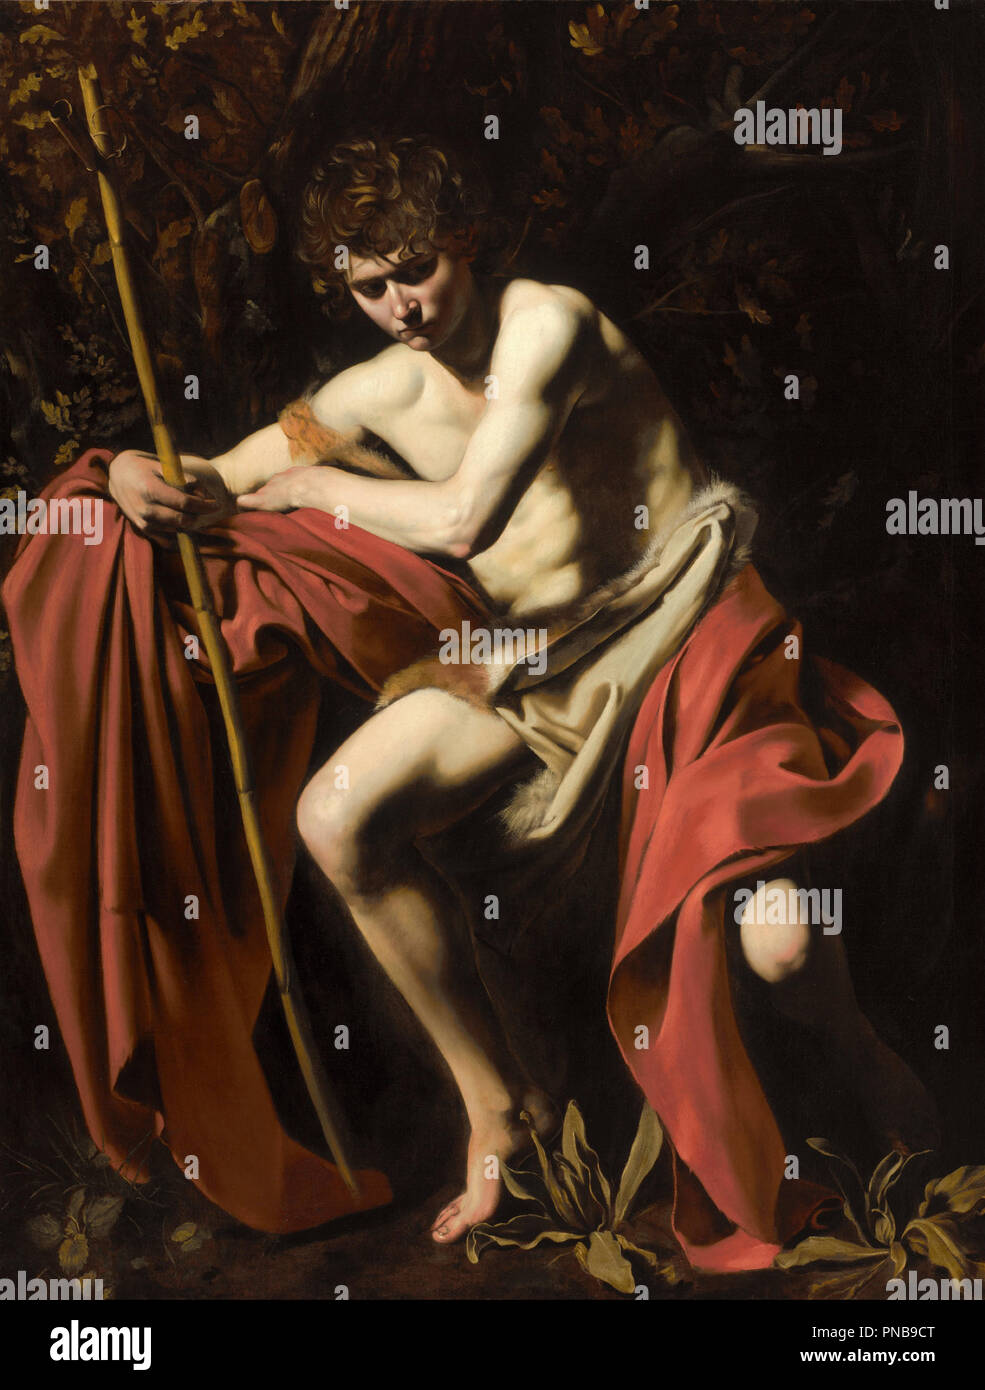 Saint John the Baptist in the Wilderness. Date/Period: Between 1604 and 1605. Painting. Oil on canvas. Height: 172.7 cm (68 in); Width: 132 cm (52 in). Author: CARAVAGGIO. - Stock Image